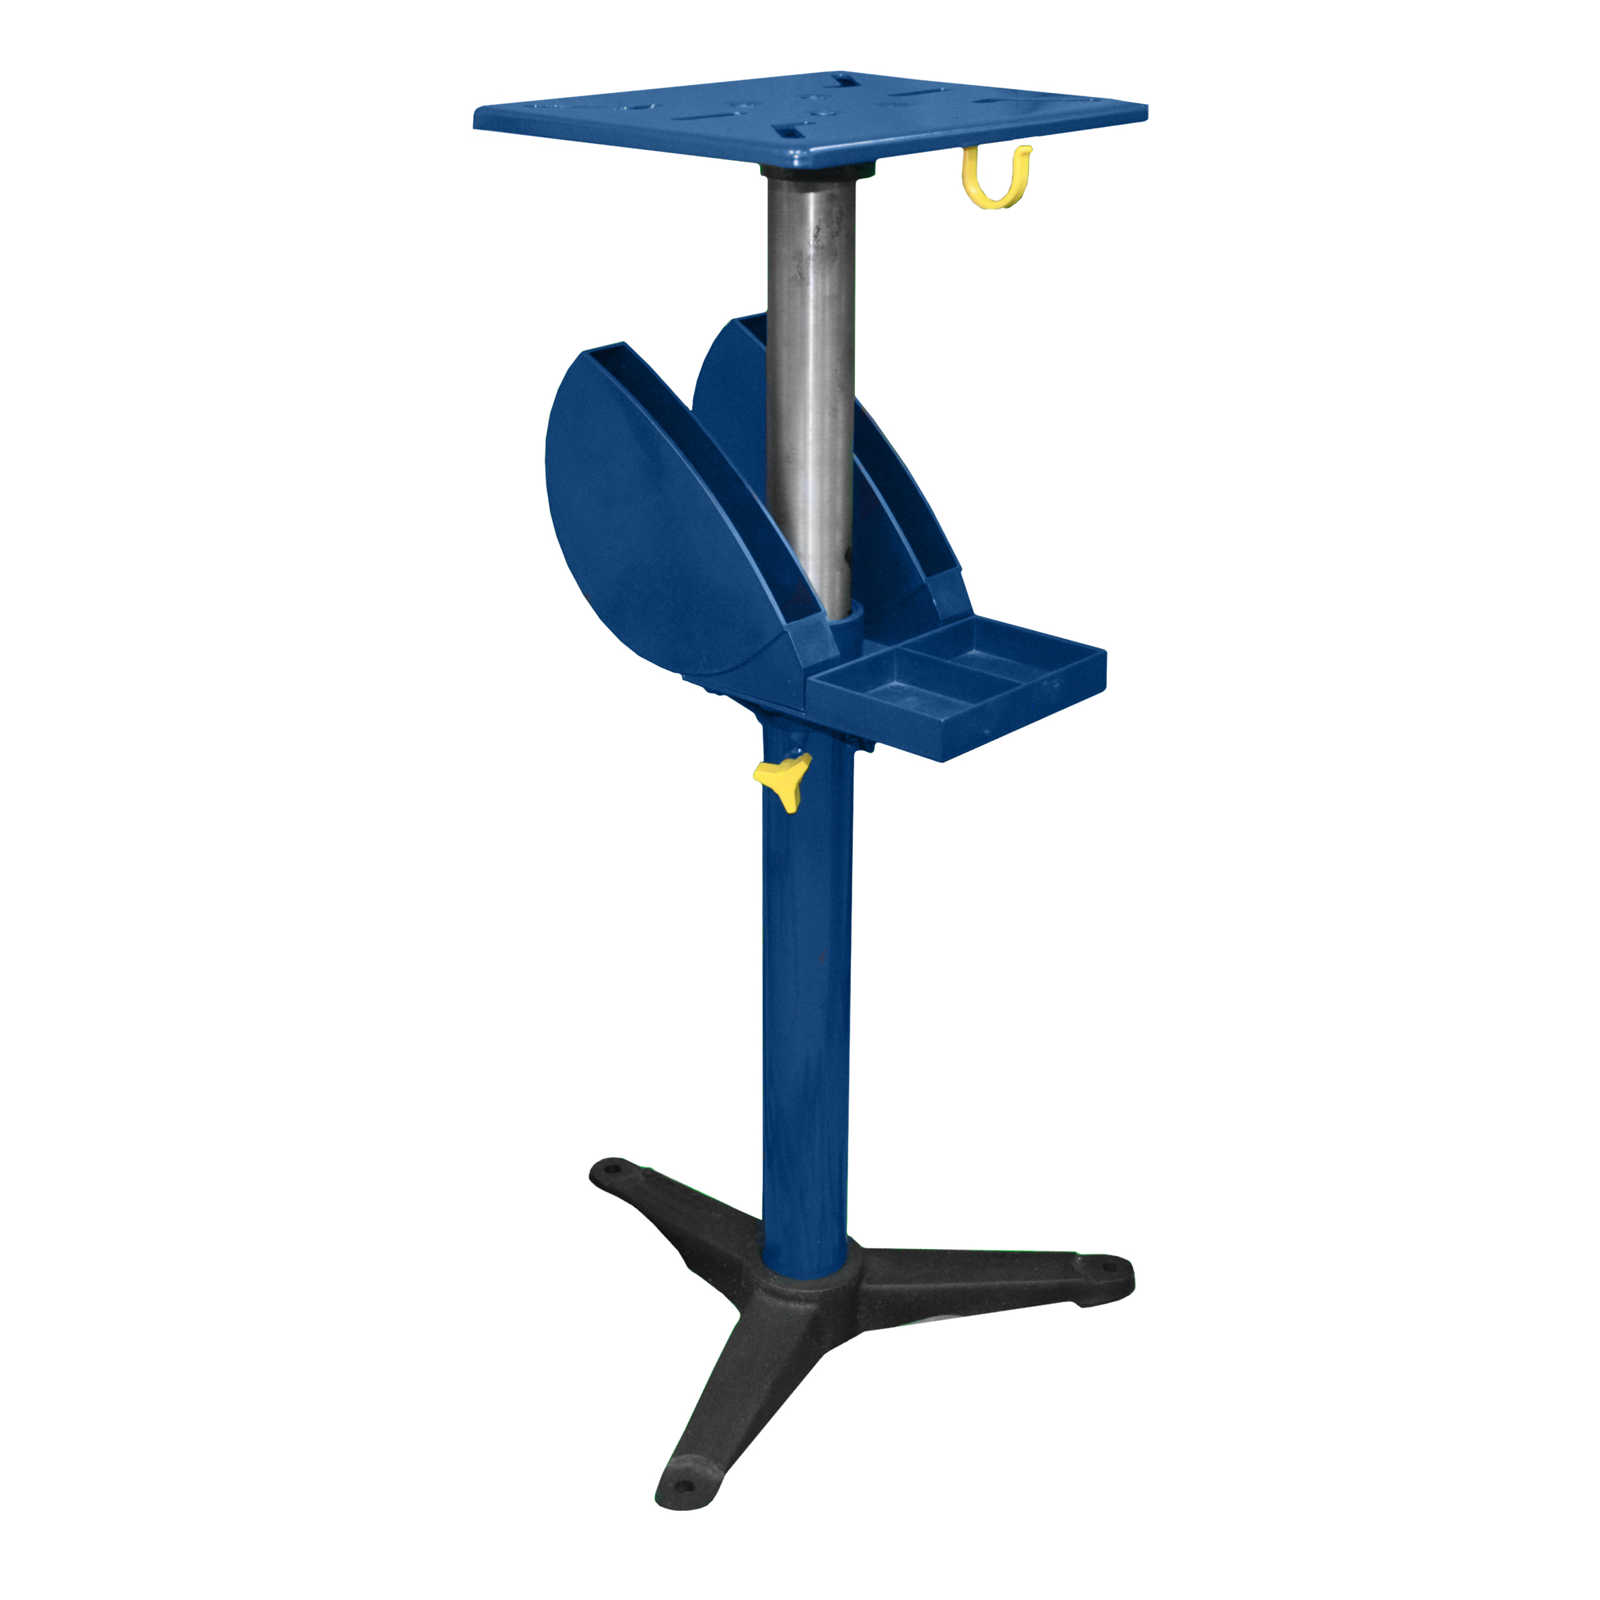 Rikon Bench Grinder Stand From